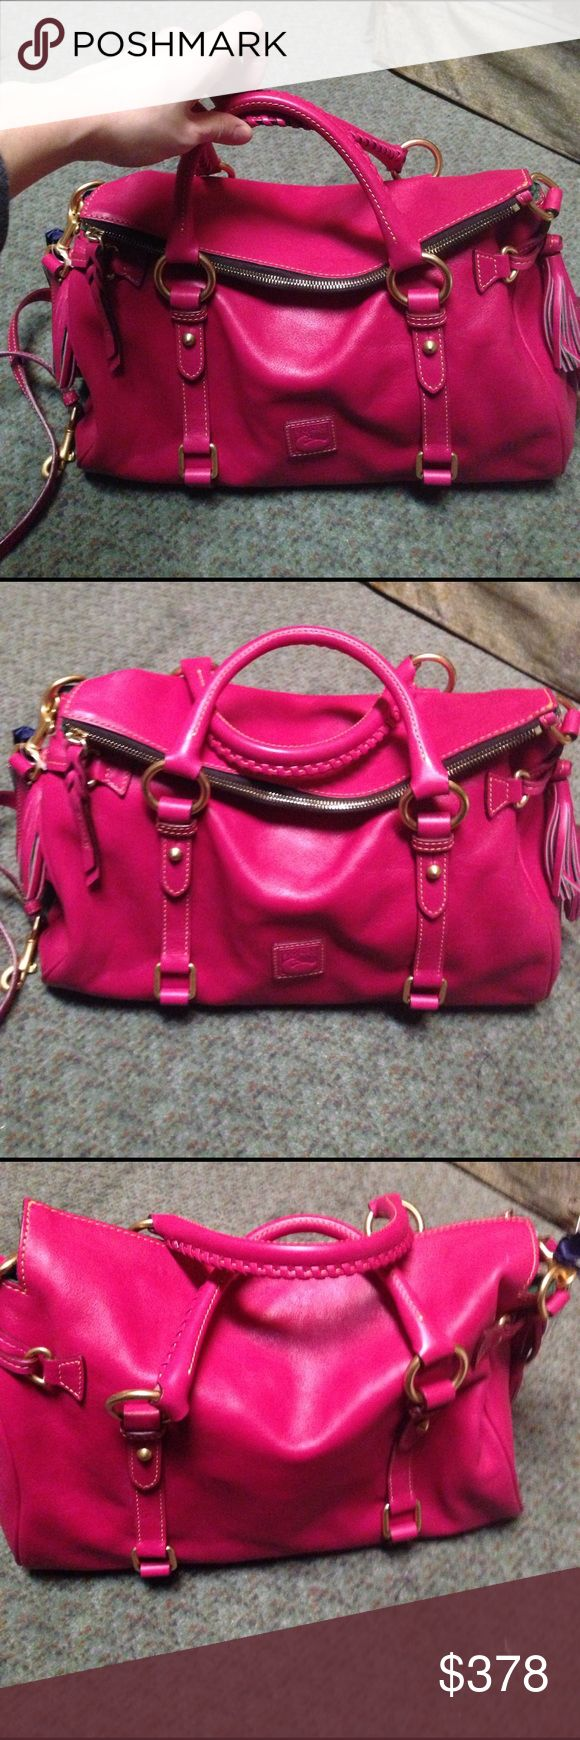 """Dooney & Bourke fuschia medium florentine satchel DOONEY & BOURKE Florentine Leather Satchel, Fuchsia. NEW, Leather,  Double handles with 4.5"""" drop; detachable, adjustable strap with 19"""" drop  Top zip closure  Gold-tone hardware throughout; double buckle detail and logo patch at front; fringe tassel at sides  Interior features two-tone lining, zip pocket, key keeper hook and 2 open pockets, 1 with snap  Dimensions: 15 inches x 6.5 inches x 9.5 inches (when top is folded over).  Please note…"""